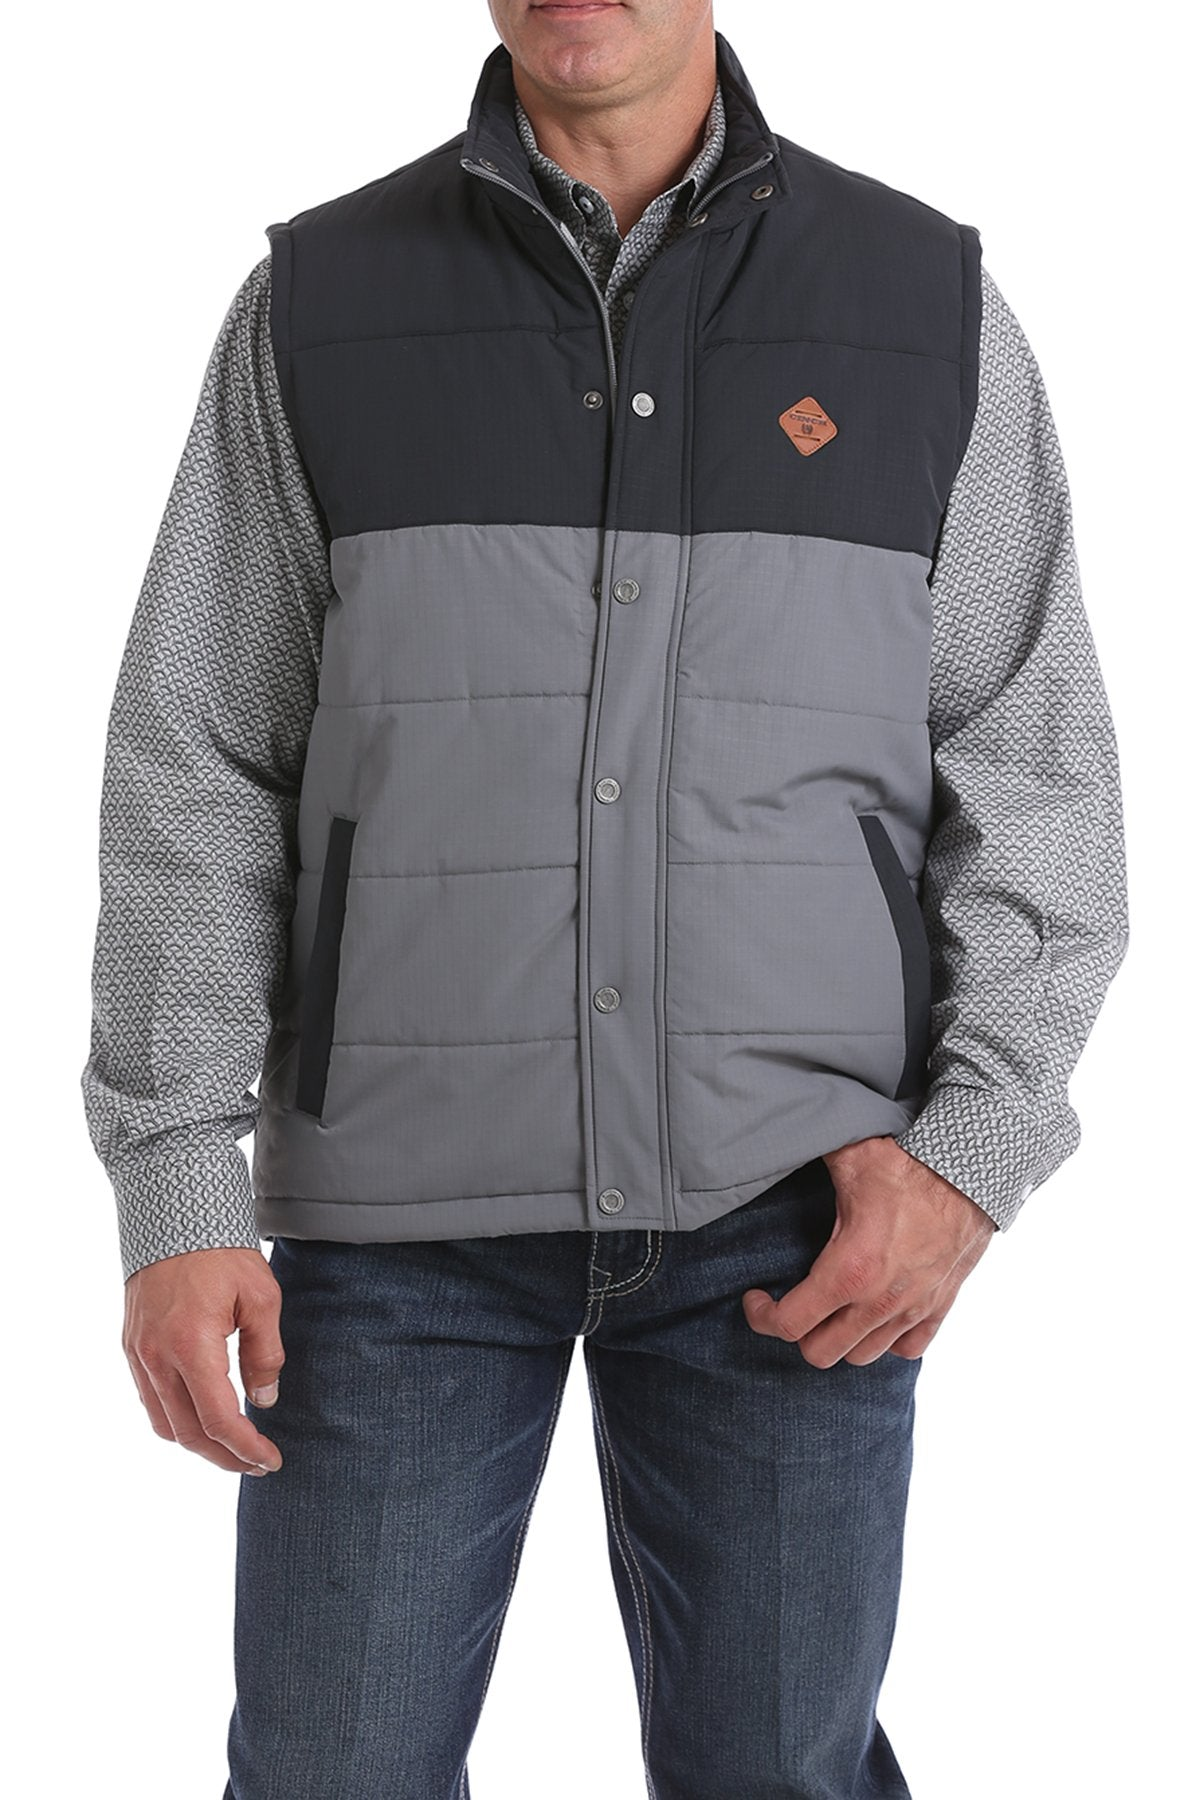 Cinch Ripstop Puffer Charcoal and Black Men's Vest